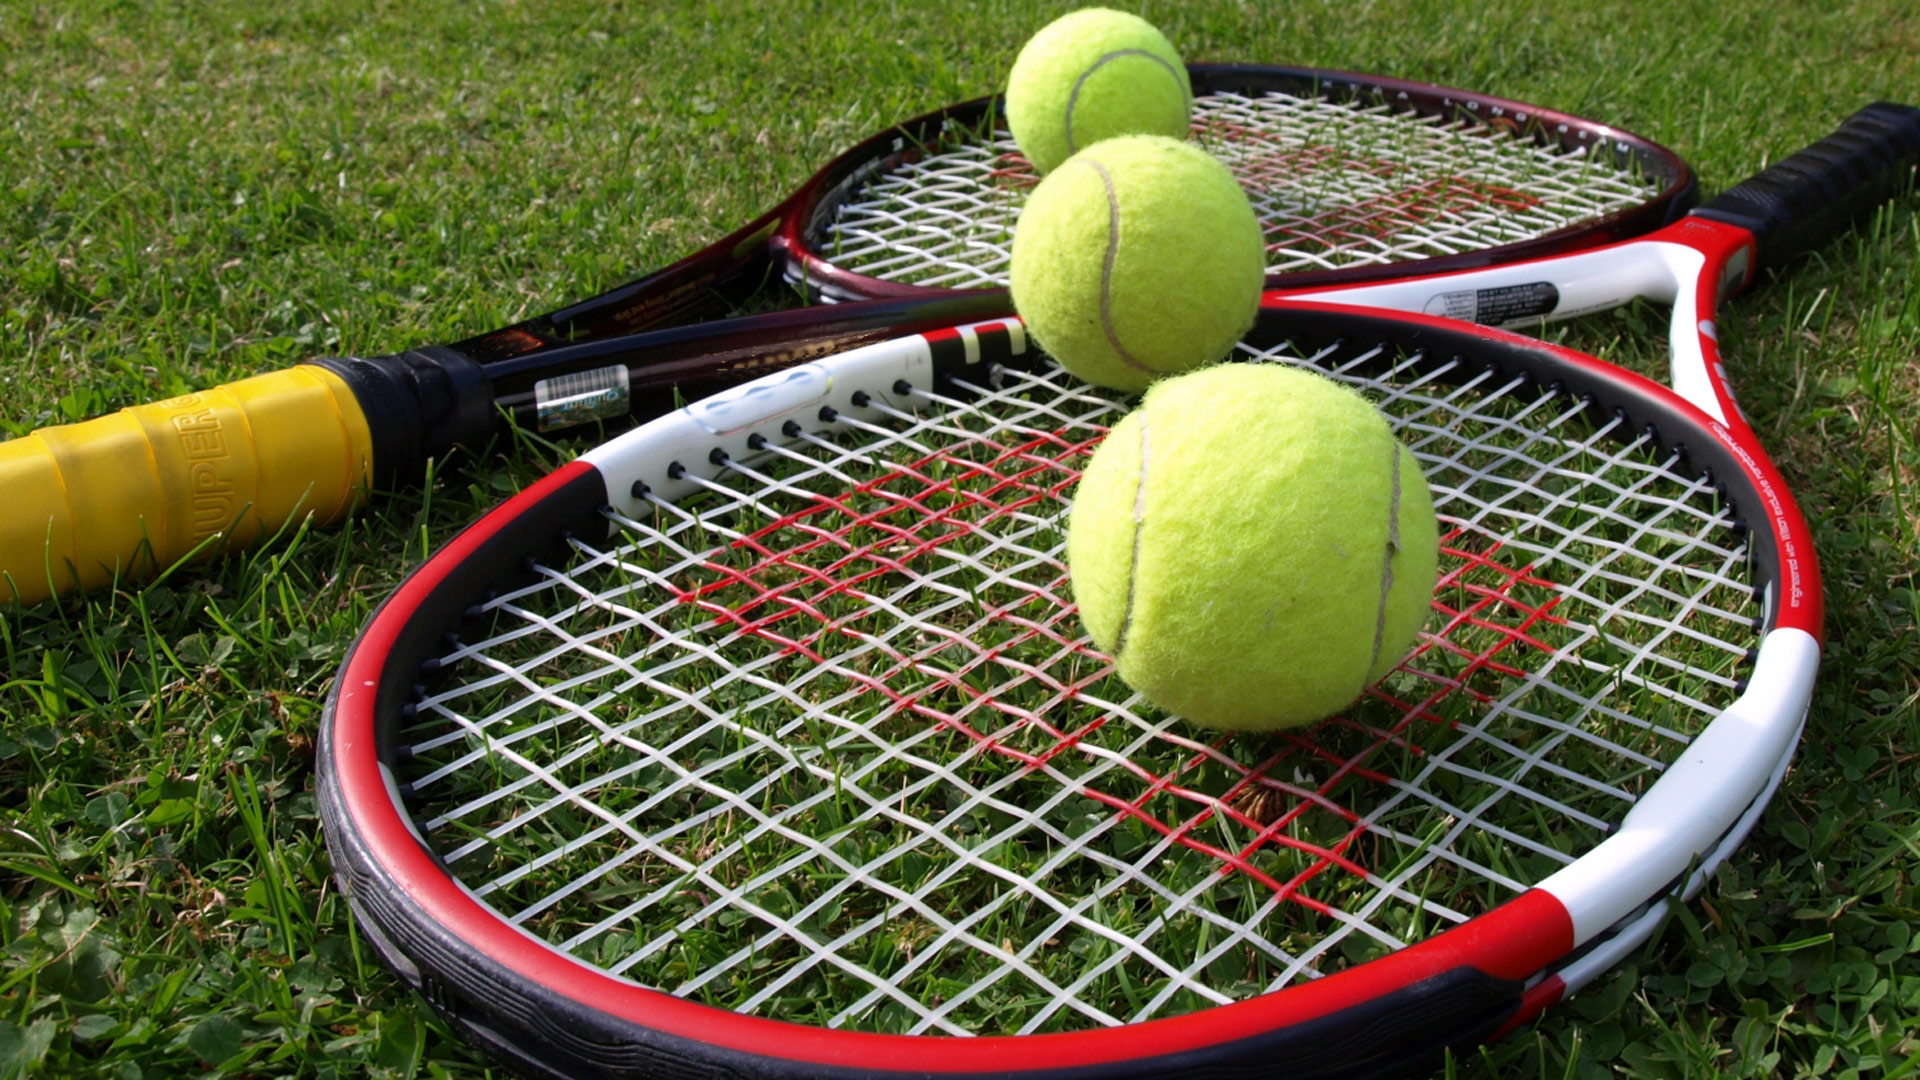 Check rankings and details about top players in Tennis